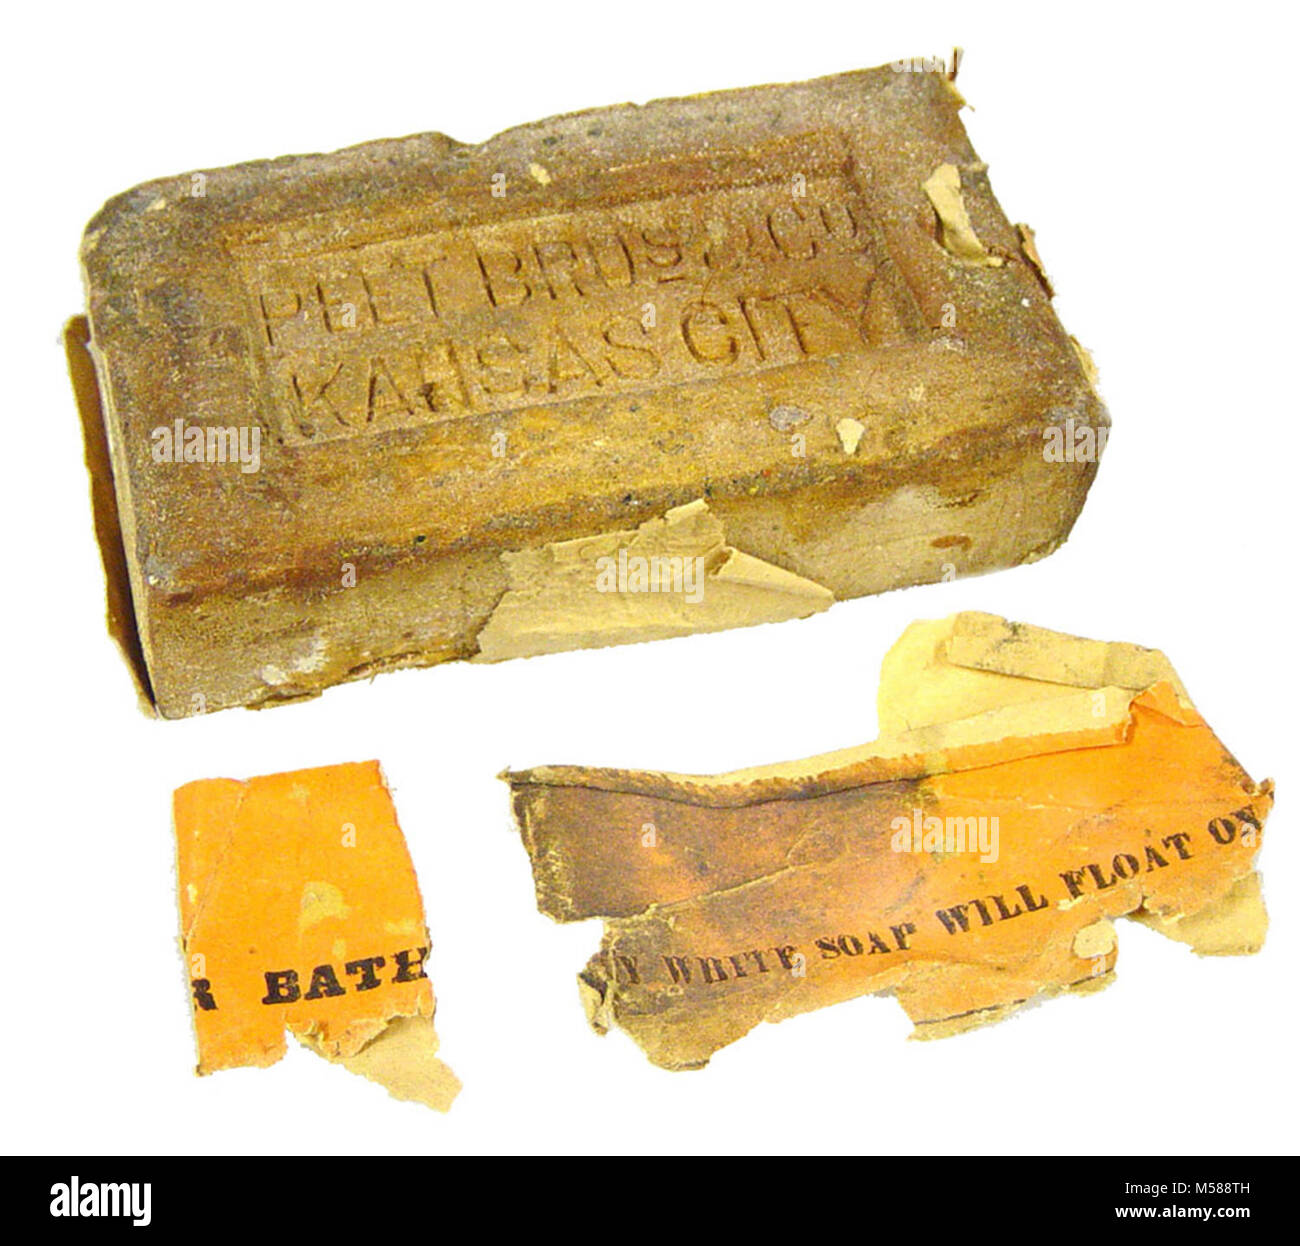 Grand Canyon National Park  Miner's Soap. BAR OF SOAP SHAPED LIKE A BRICK WITH STAMPED INFORMATION ON EACH SIDE. - Stock Image